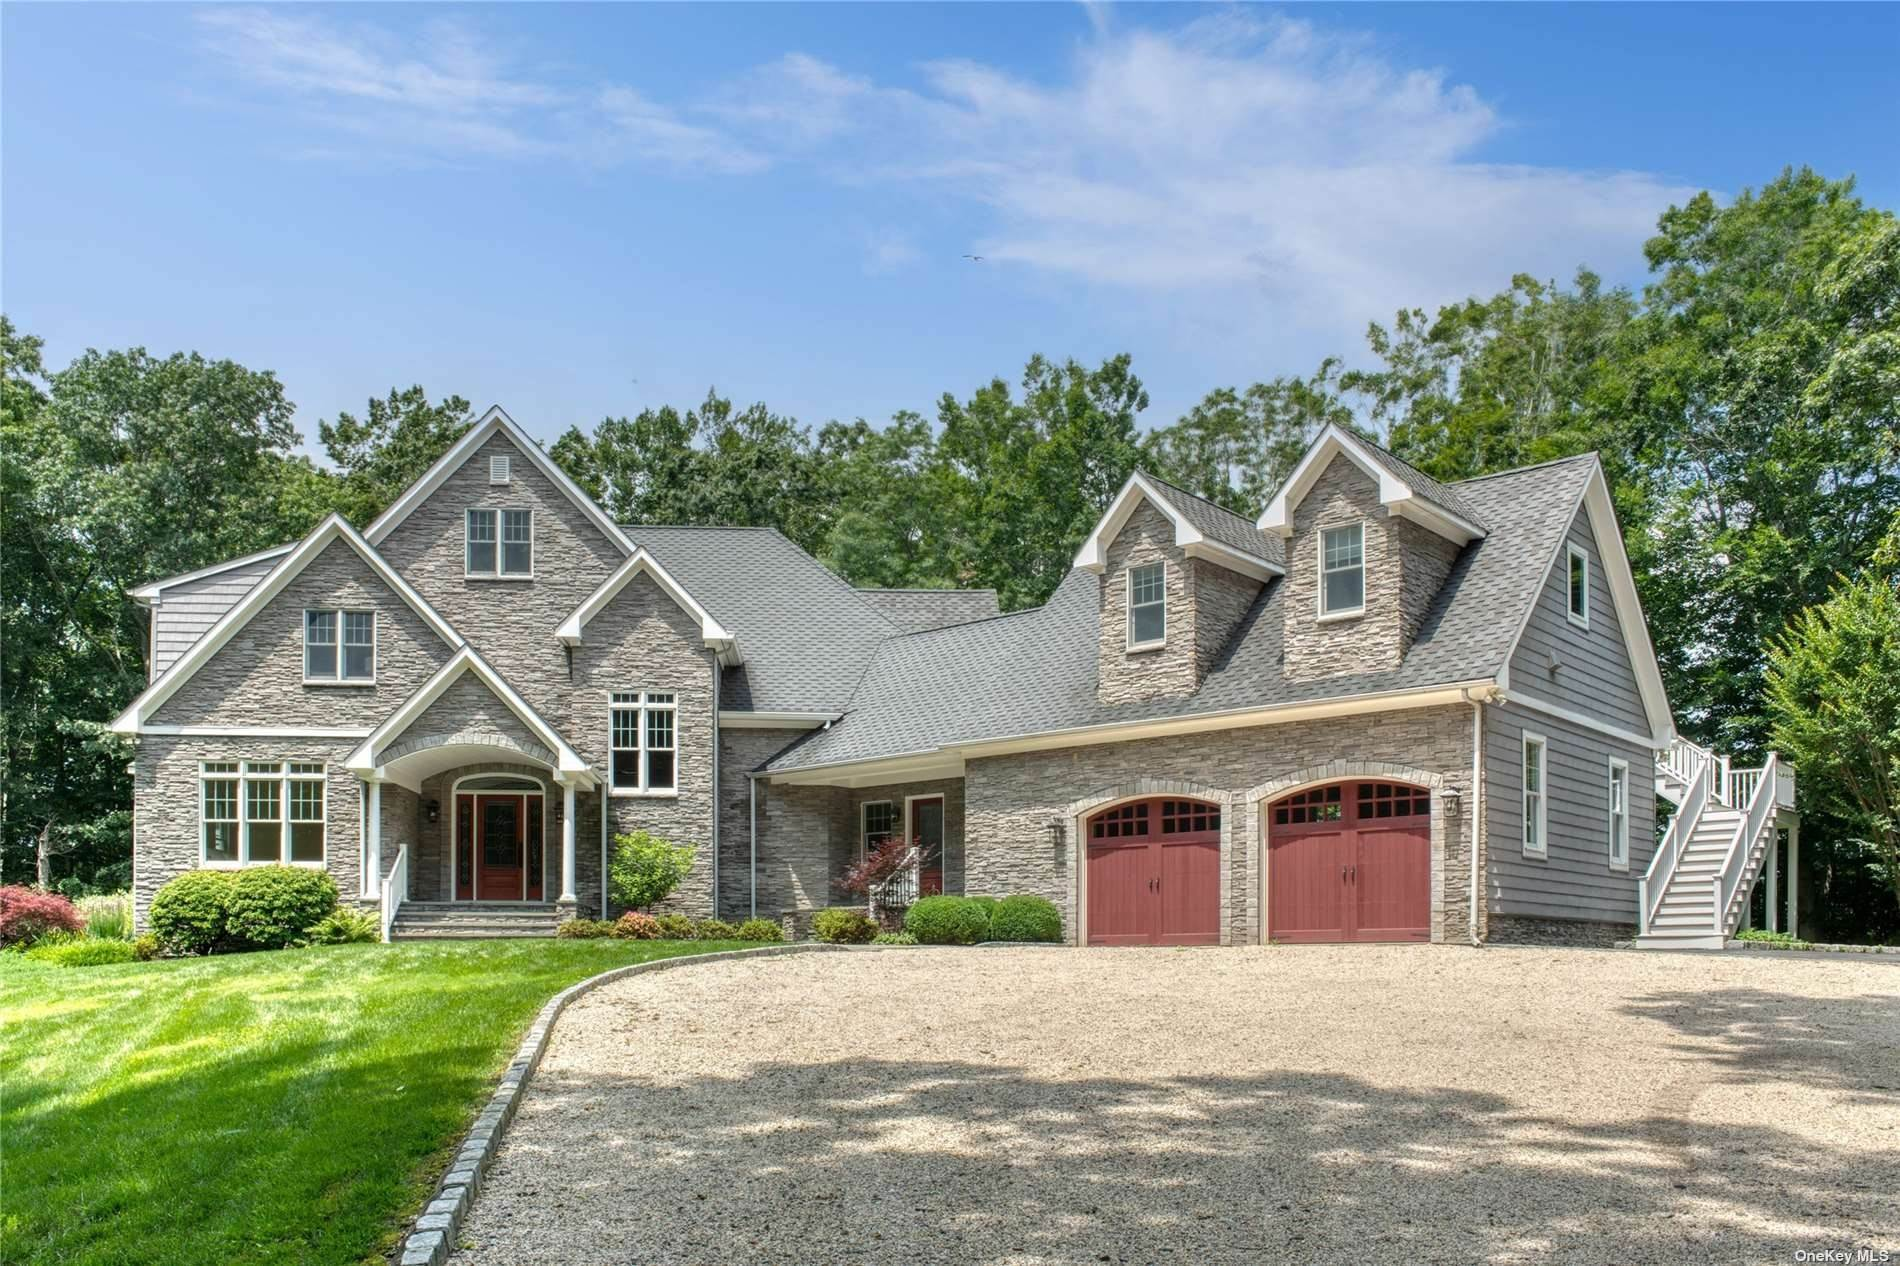 Residential for Sale at 3475 Aldrich Lane, Laurel, NY 11948 Laurel, New York 11948 United States